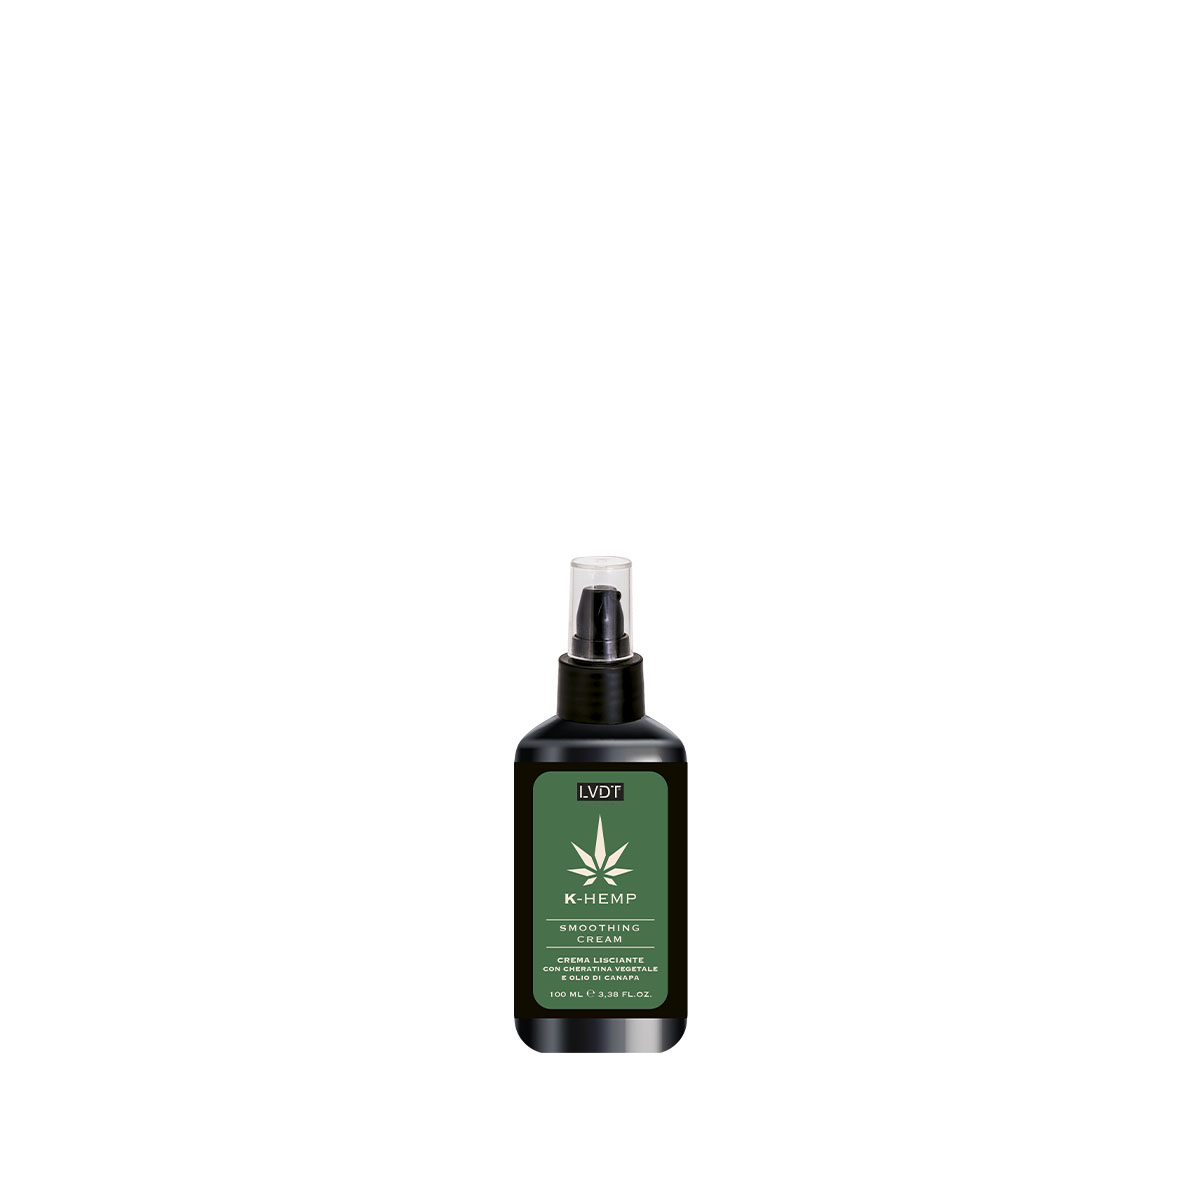 K-hemp Smoothing Cream 100ml